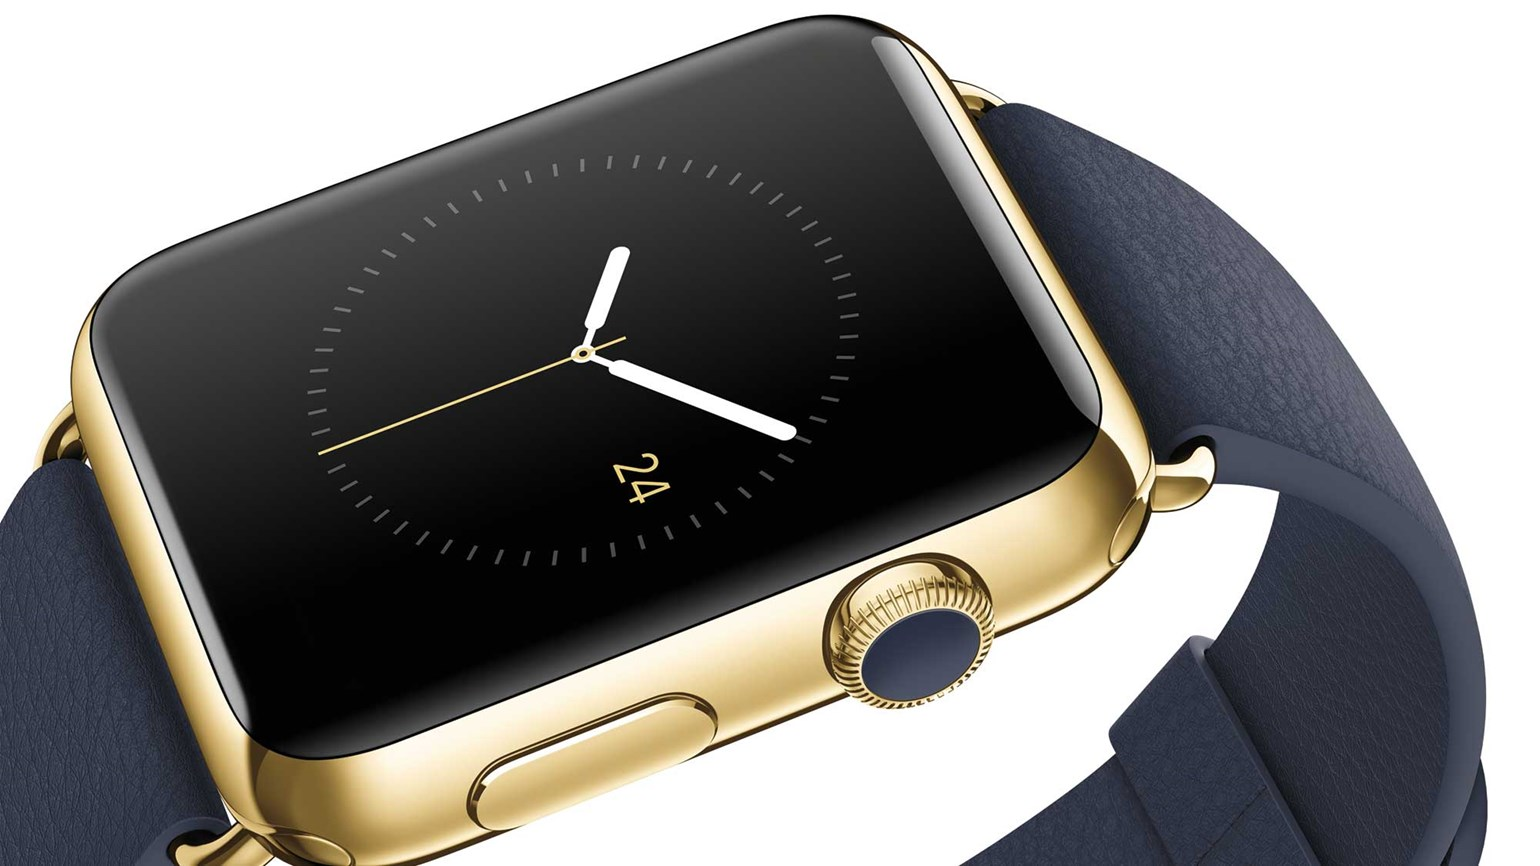 Apple Watch to offer uses for travelers